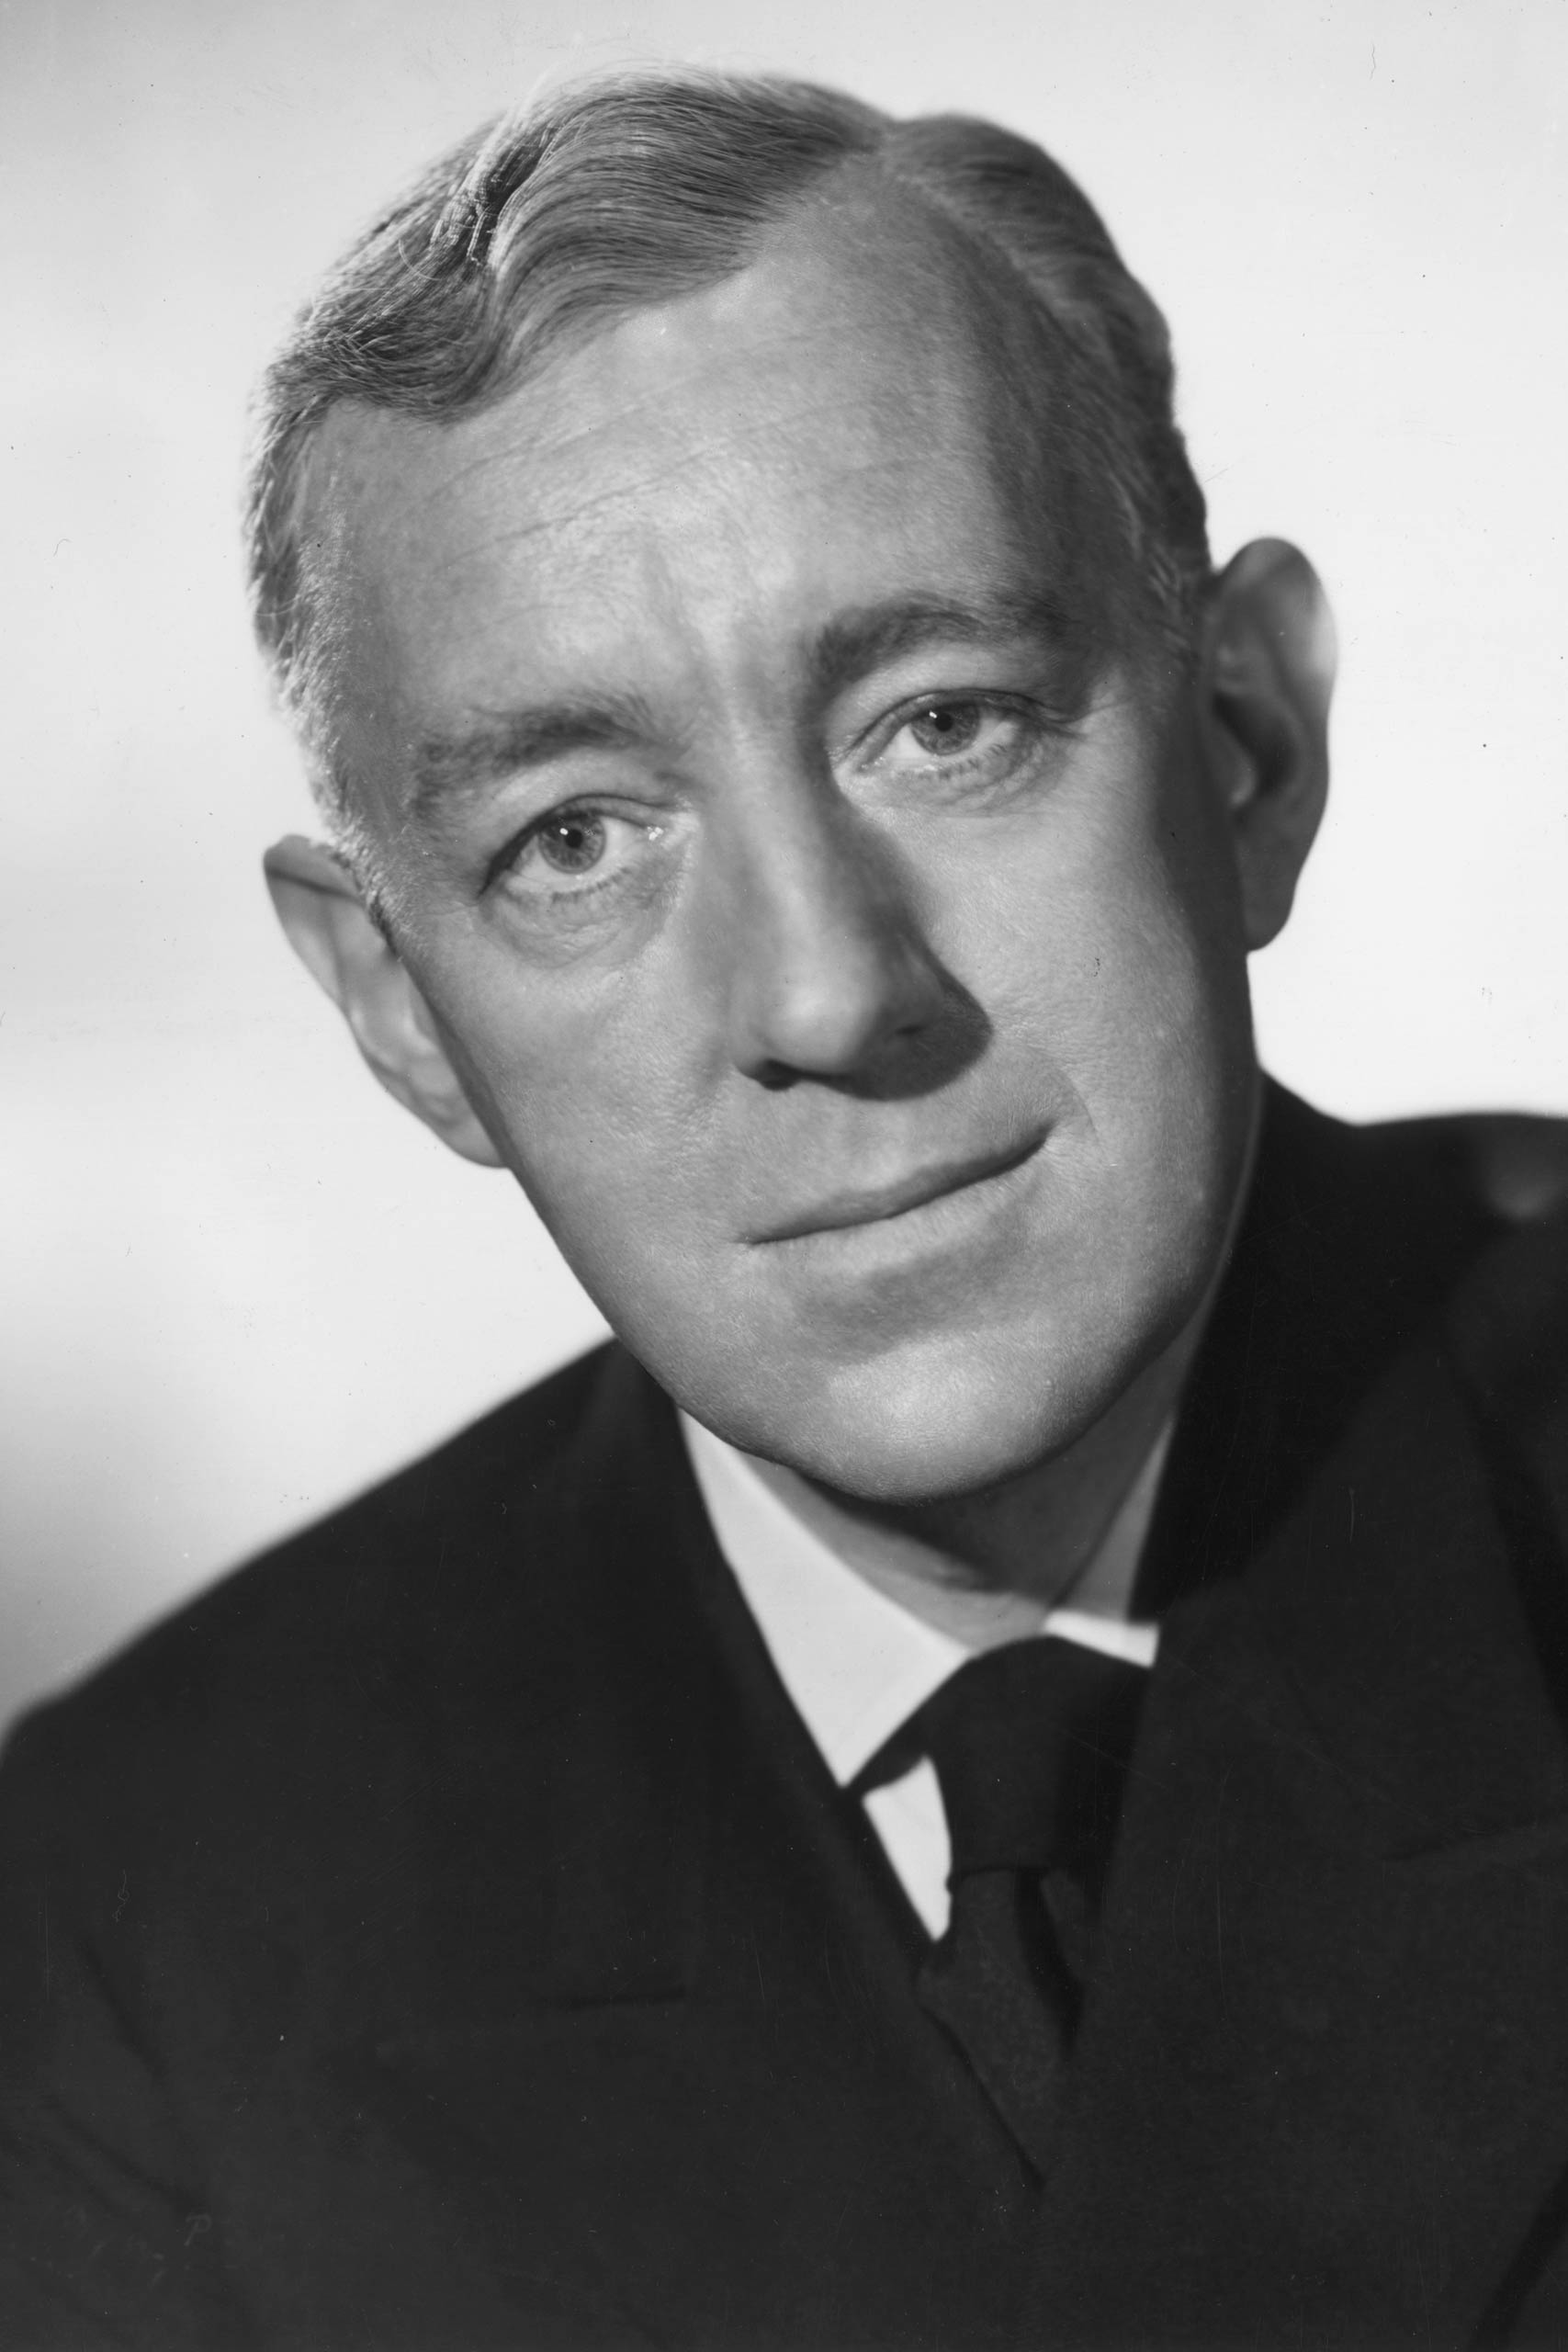 <strong>1958: Alec Guinness - <i>The Bridge on the River Kwai</i></strong>